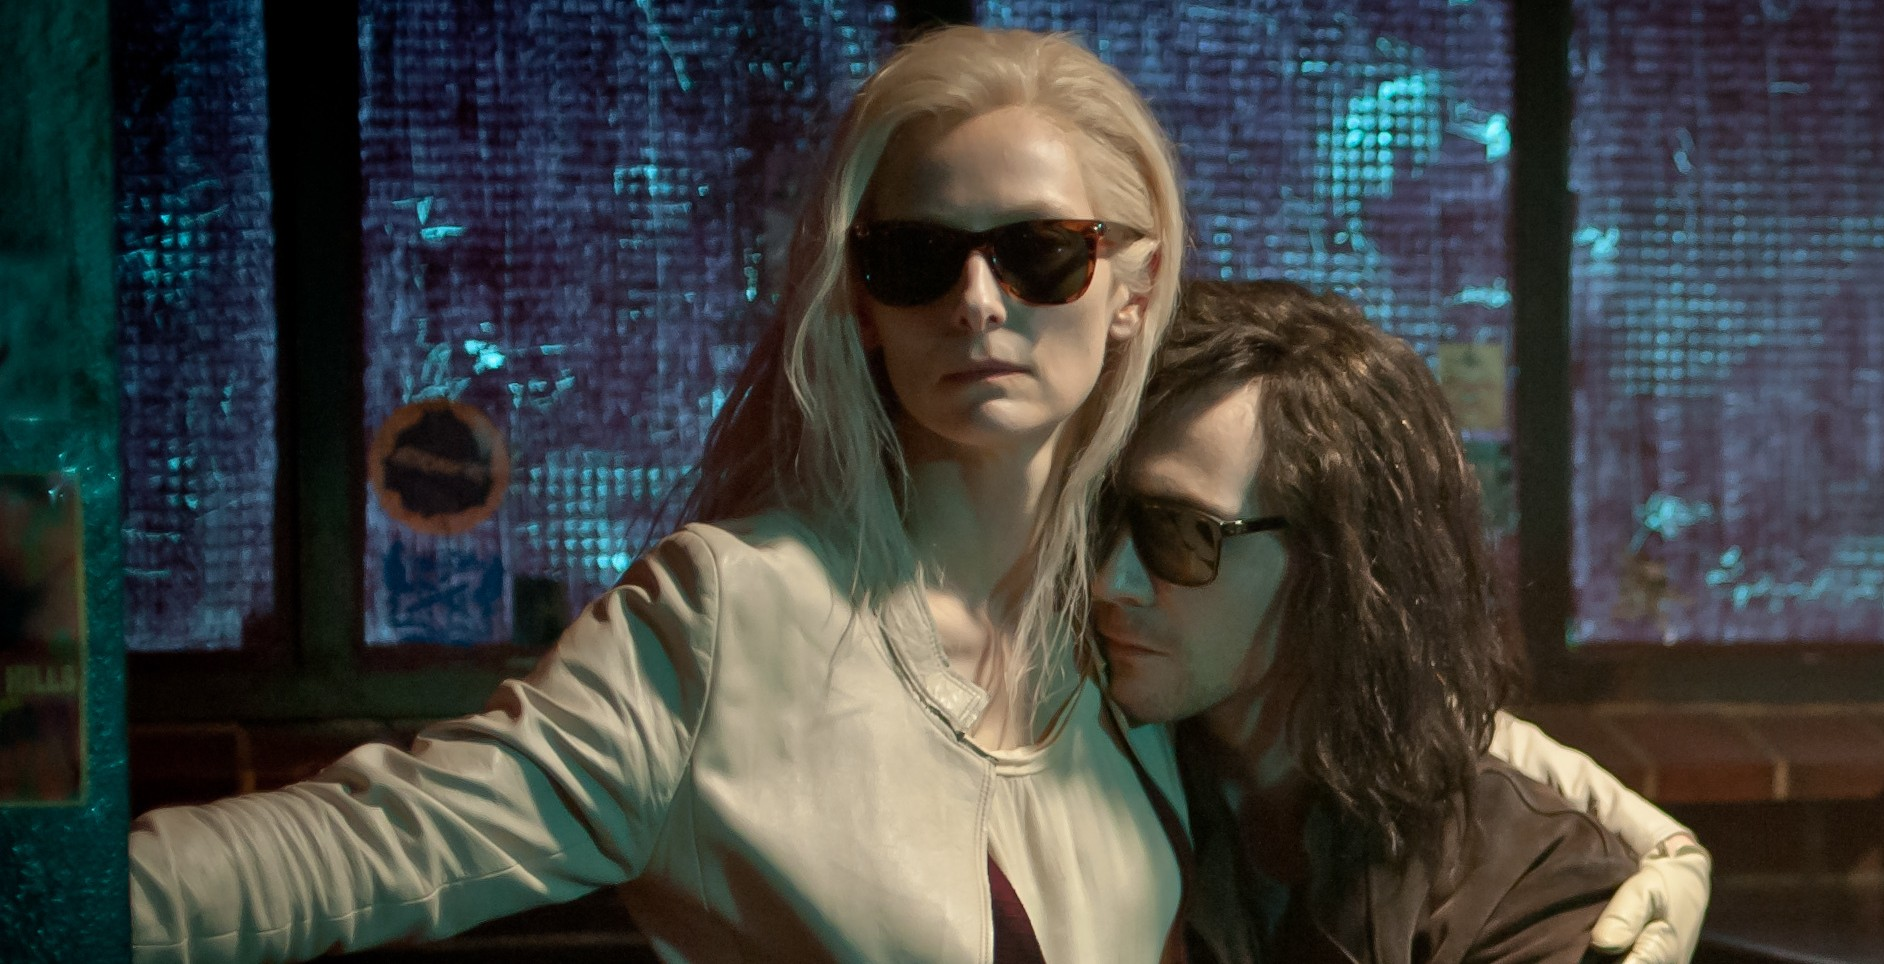 Still from Only Lovers Left Alive (2013)